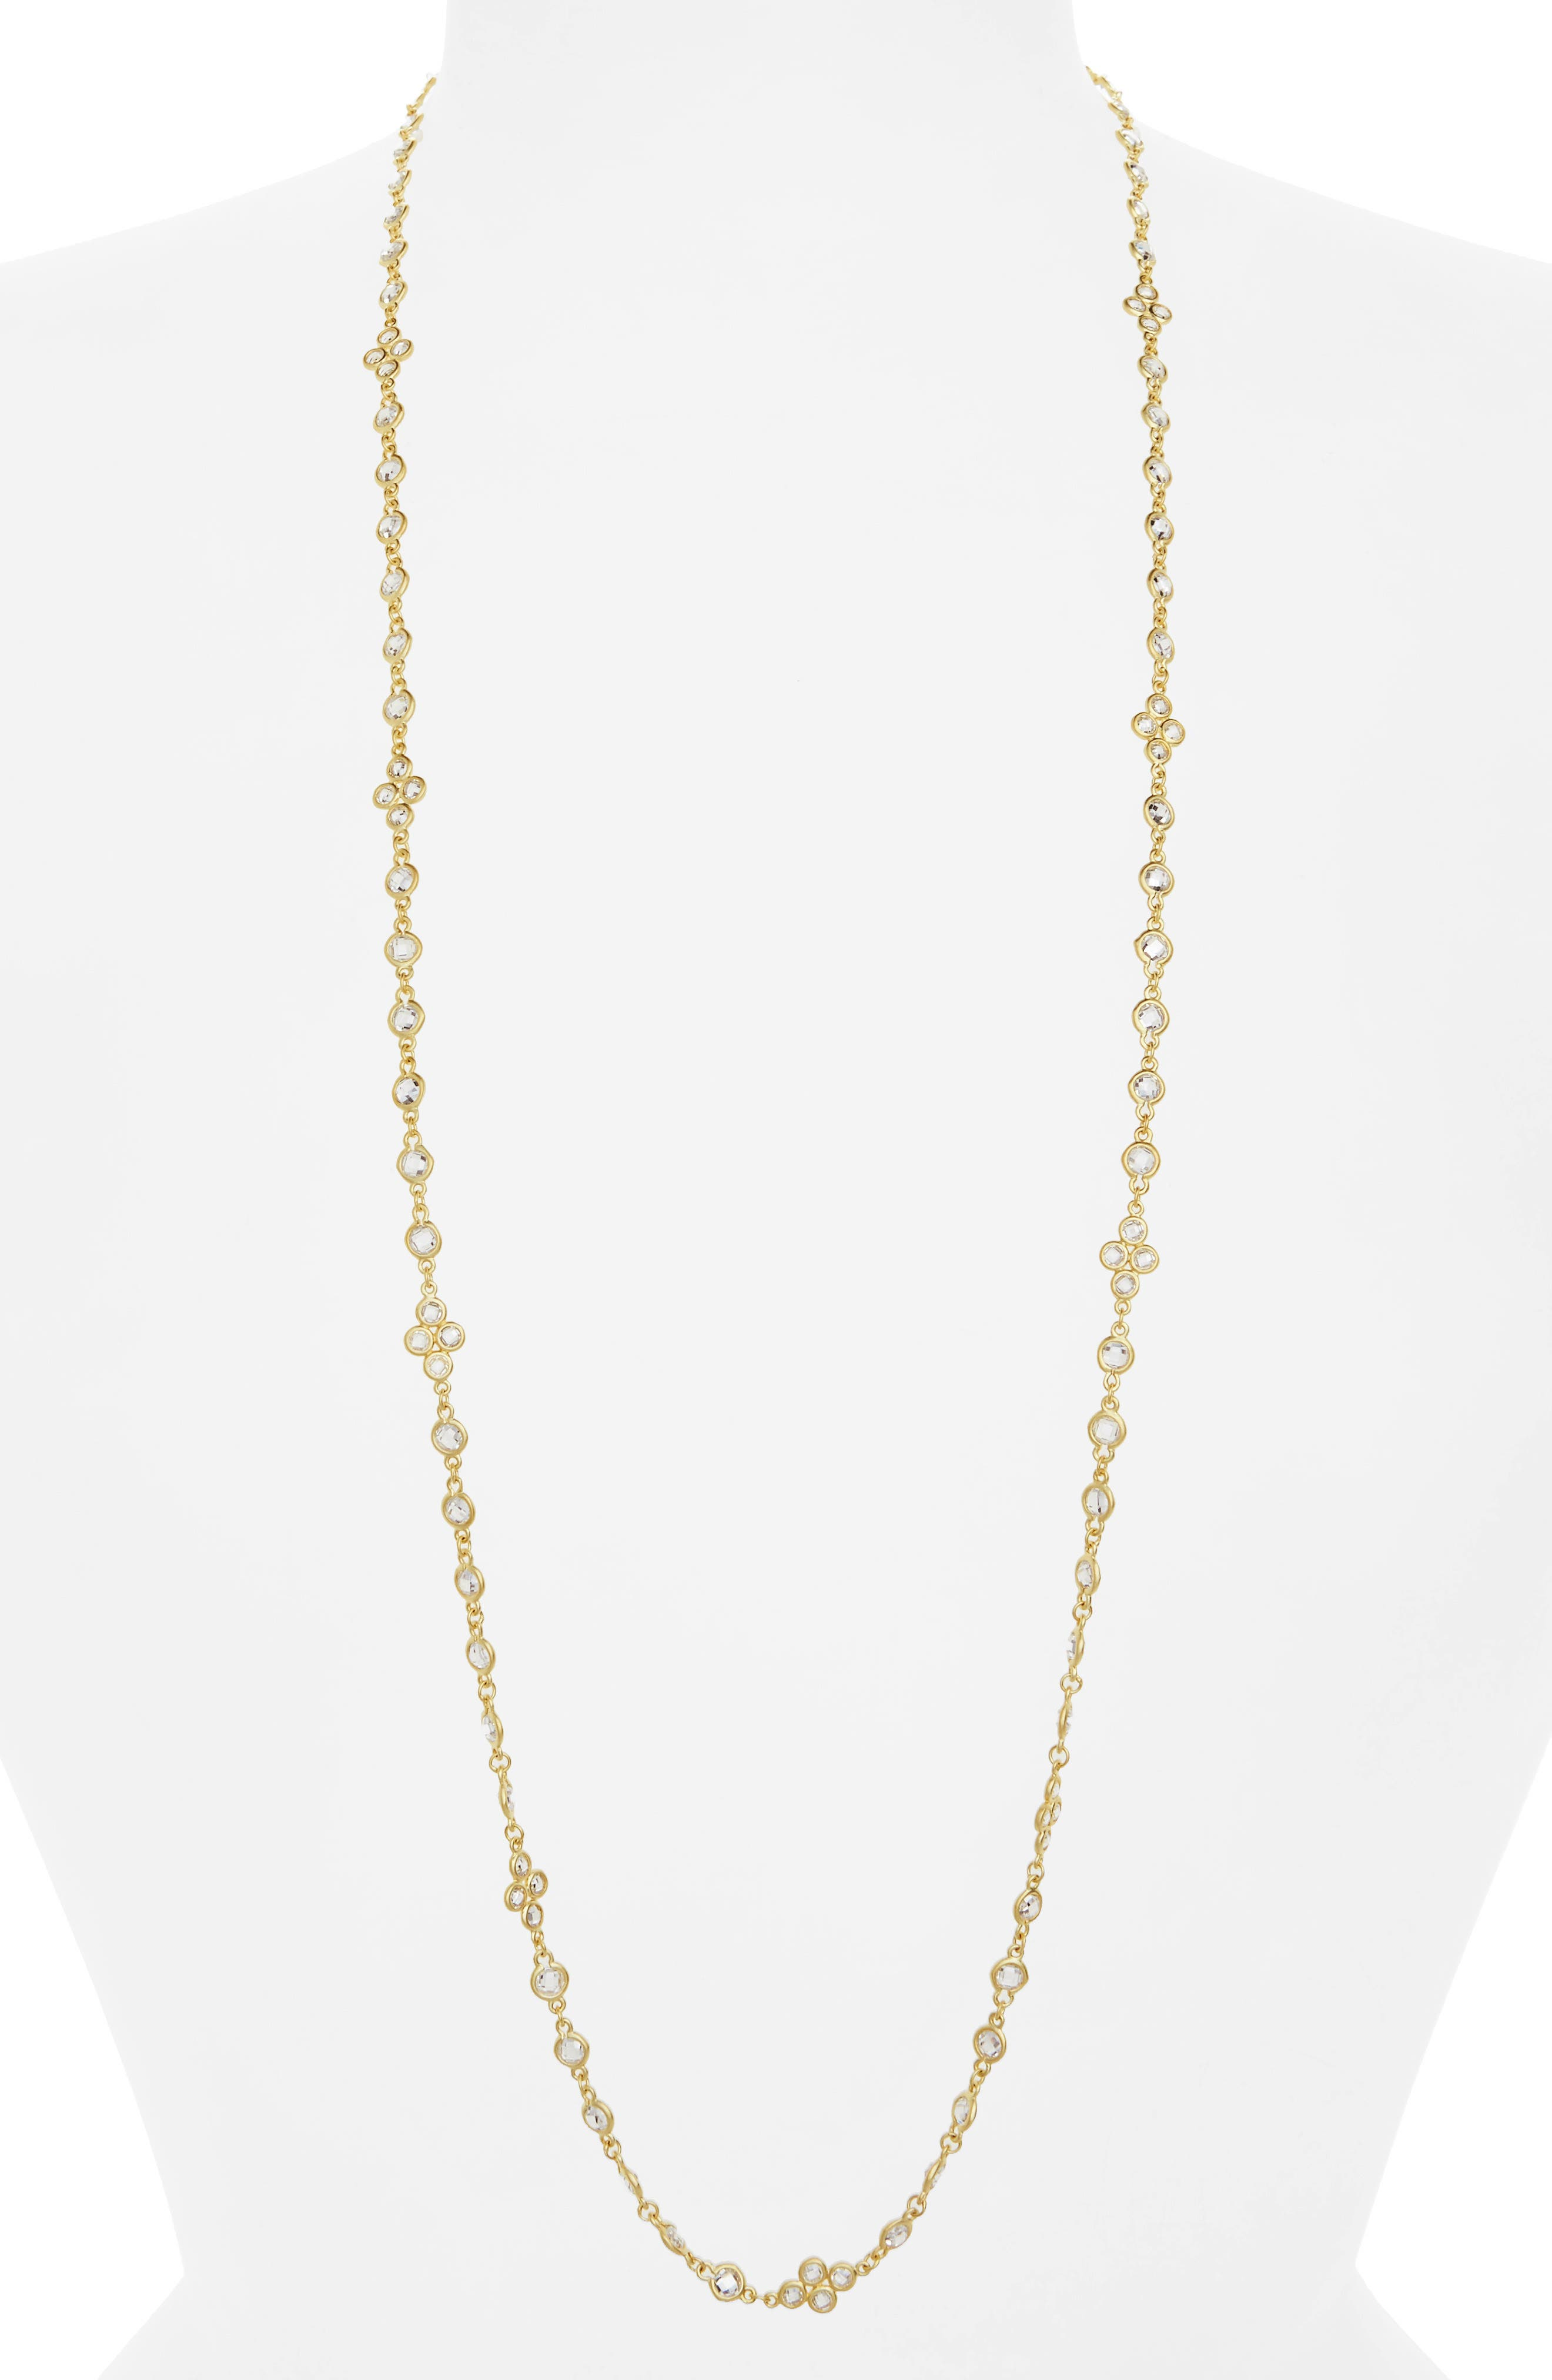 Cubic Zirconia Necklace,                         Main,                         color, Gold/ Clear